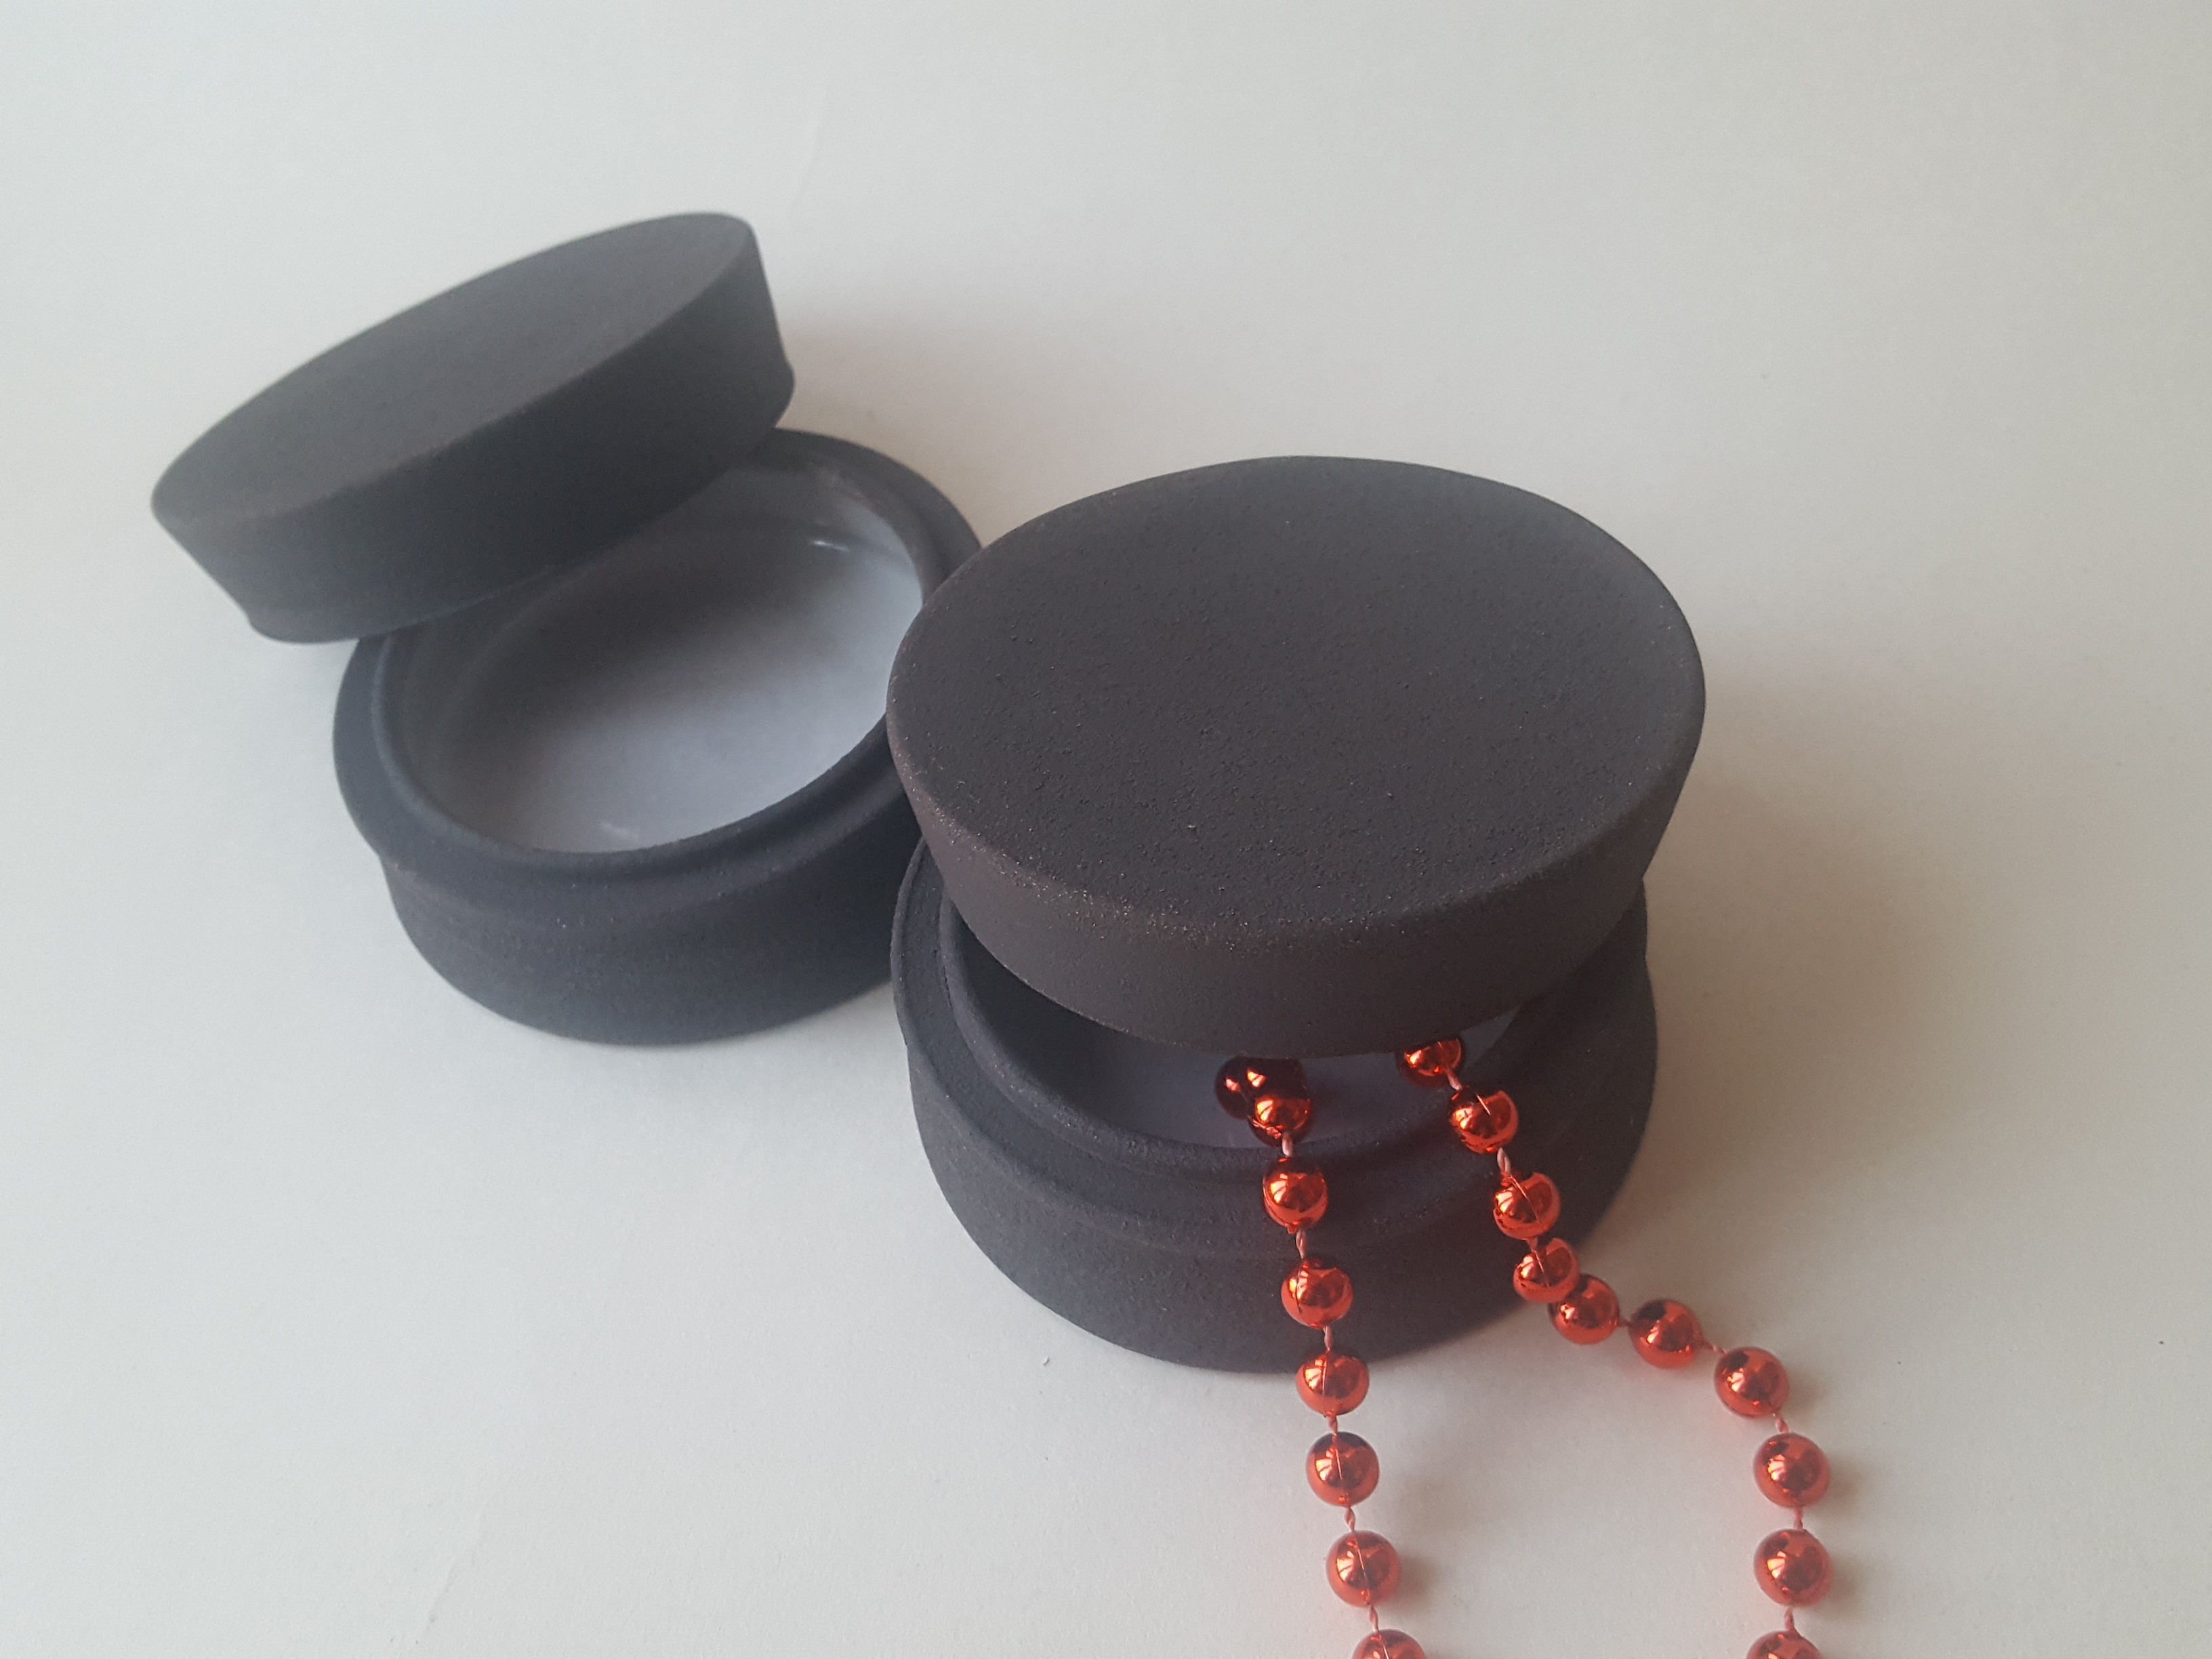 Handmade black ceramic jewellery box